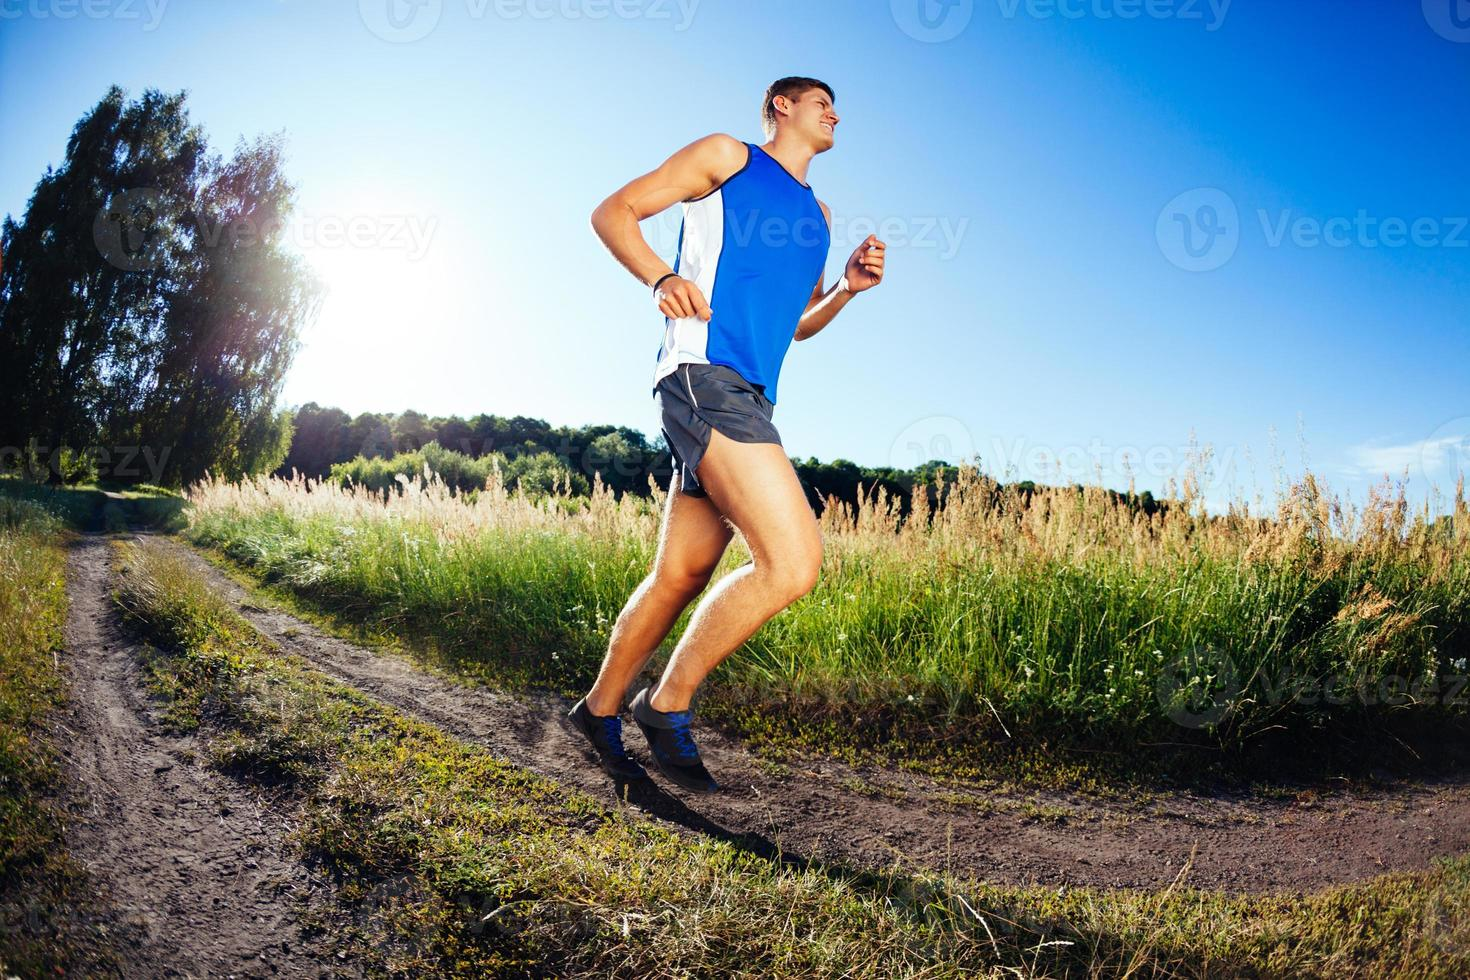 Running in countryside photo